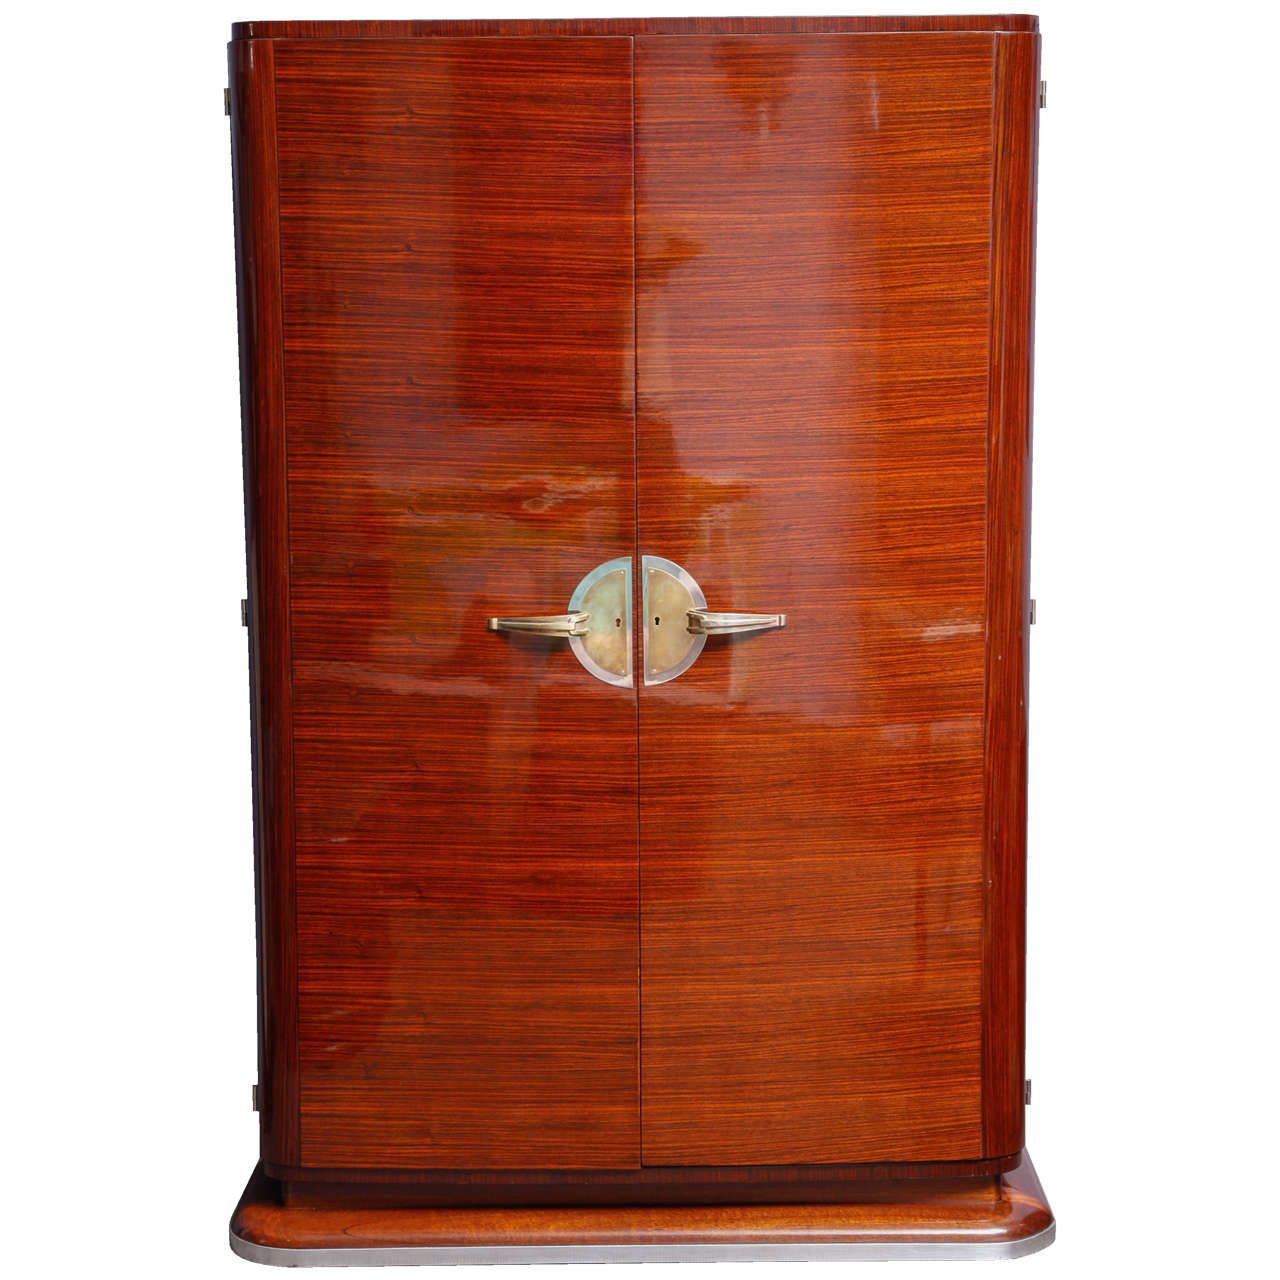 French Art Deco Wardrobe, Indian Rosewood